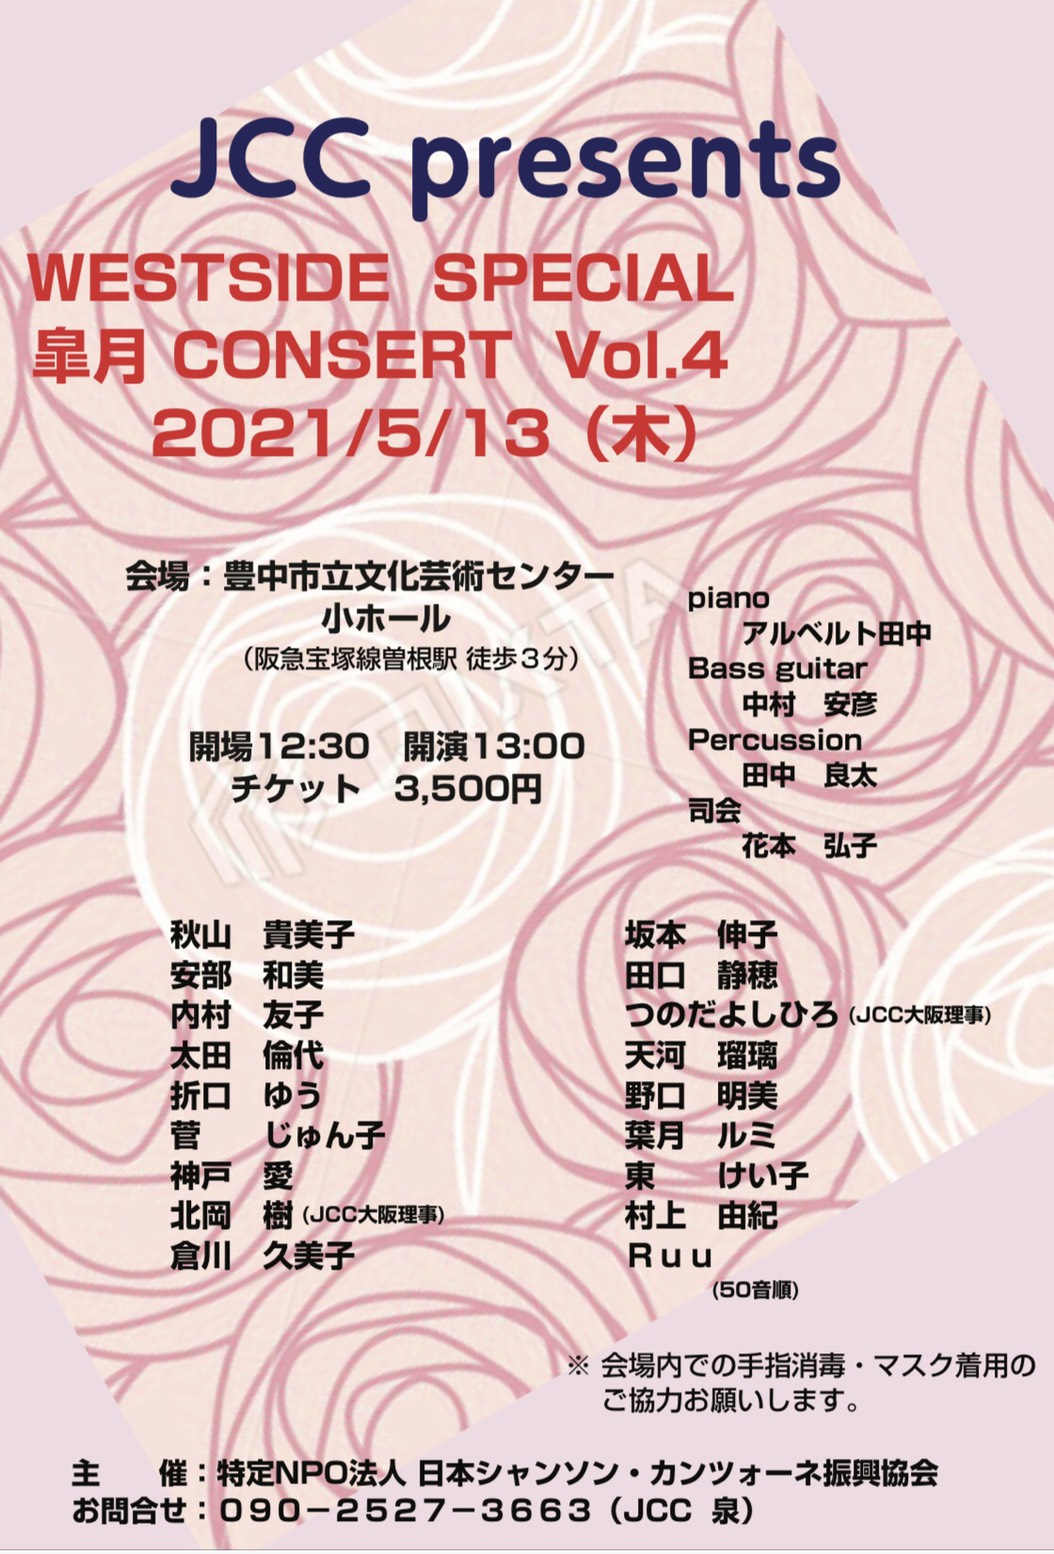 JCC presents WESTSIDE SPECIAL 皐月 CONCERT Vol.4